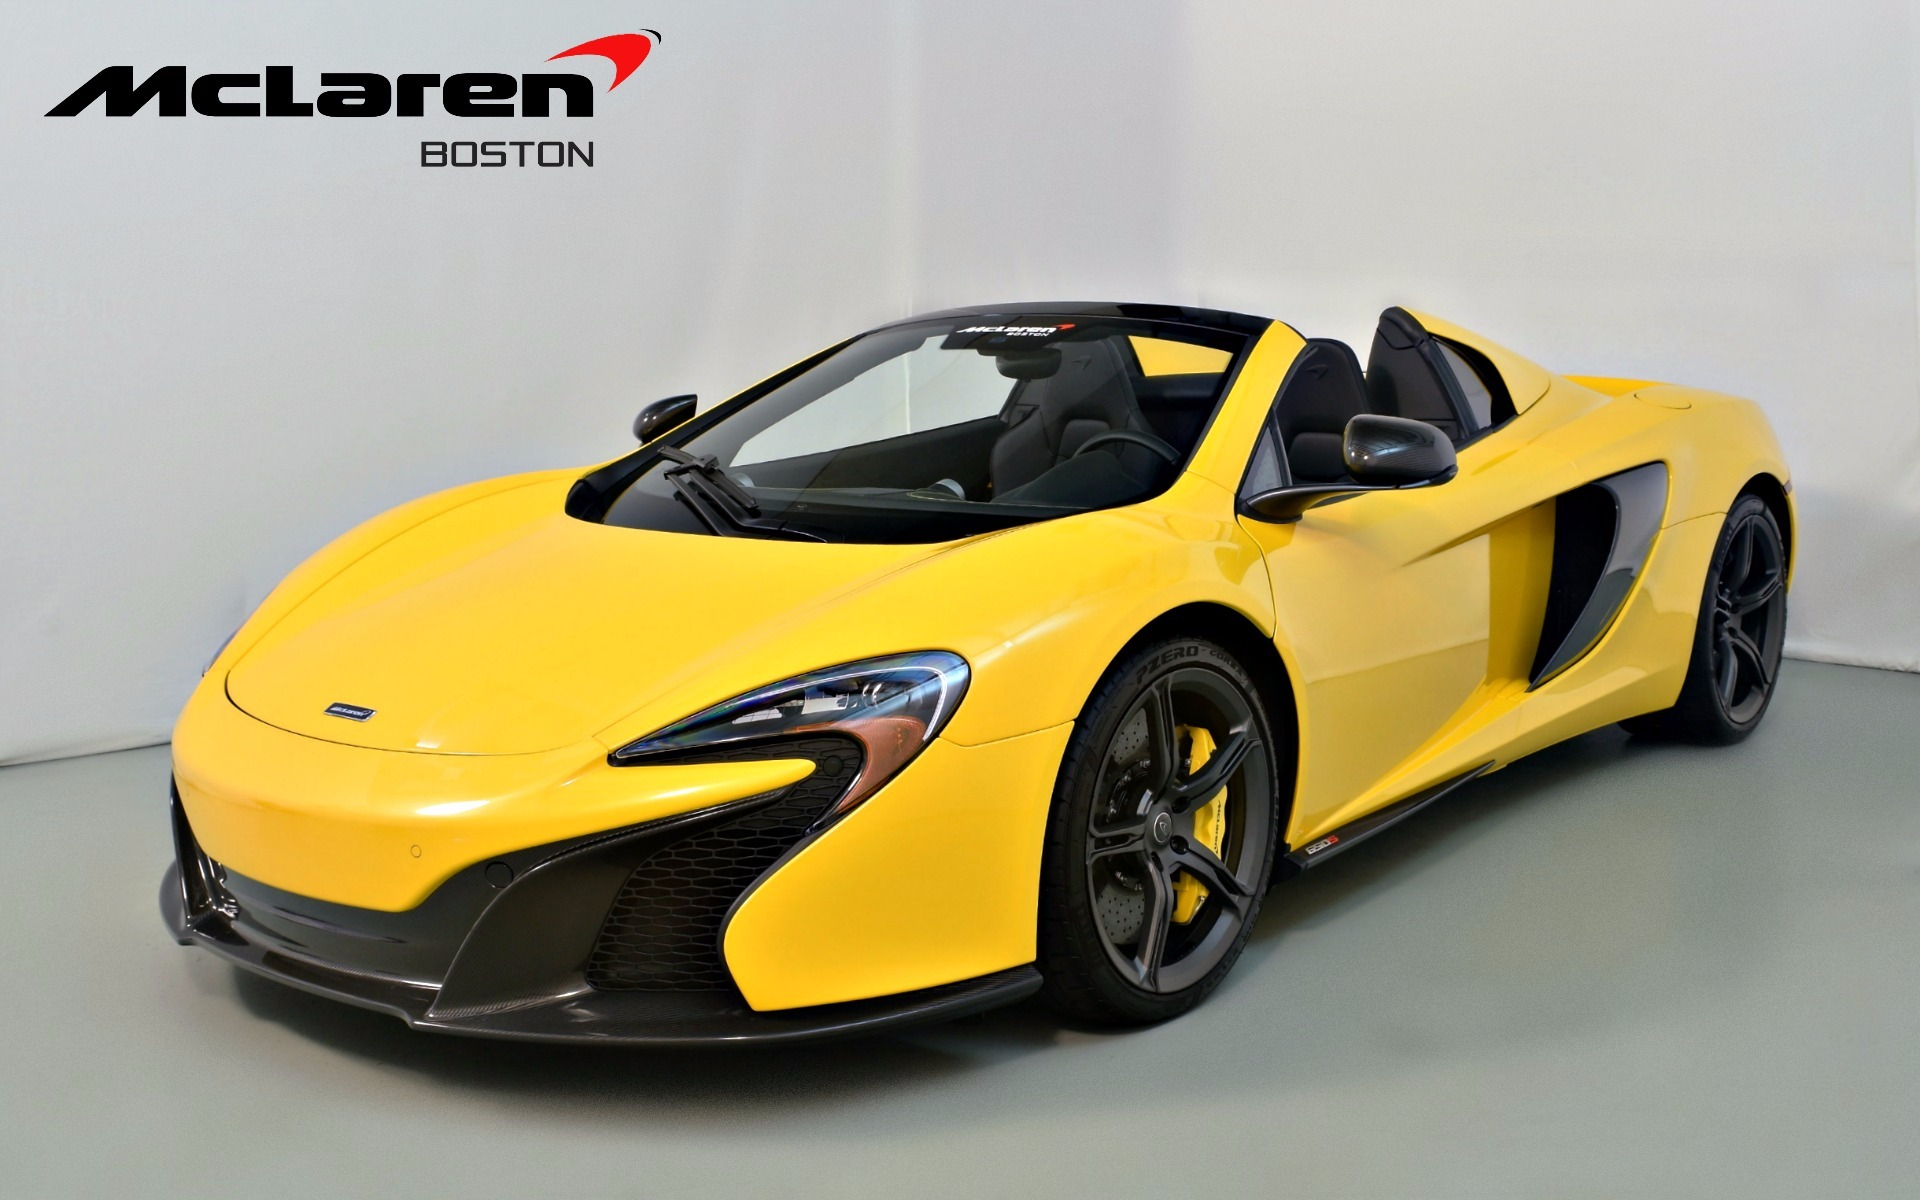 2016 McLaren 650S SPIDER For Sale in Norwell, MA 005893  Mclaren Boston